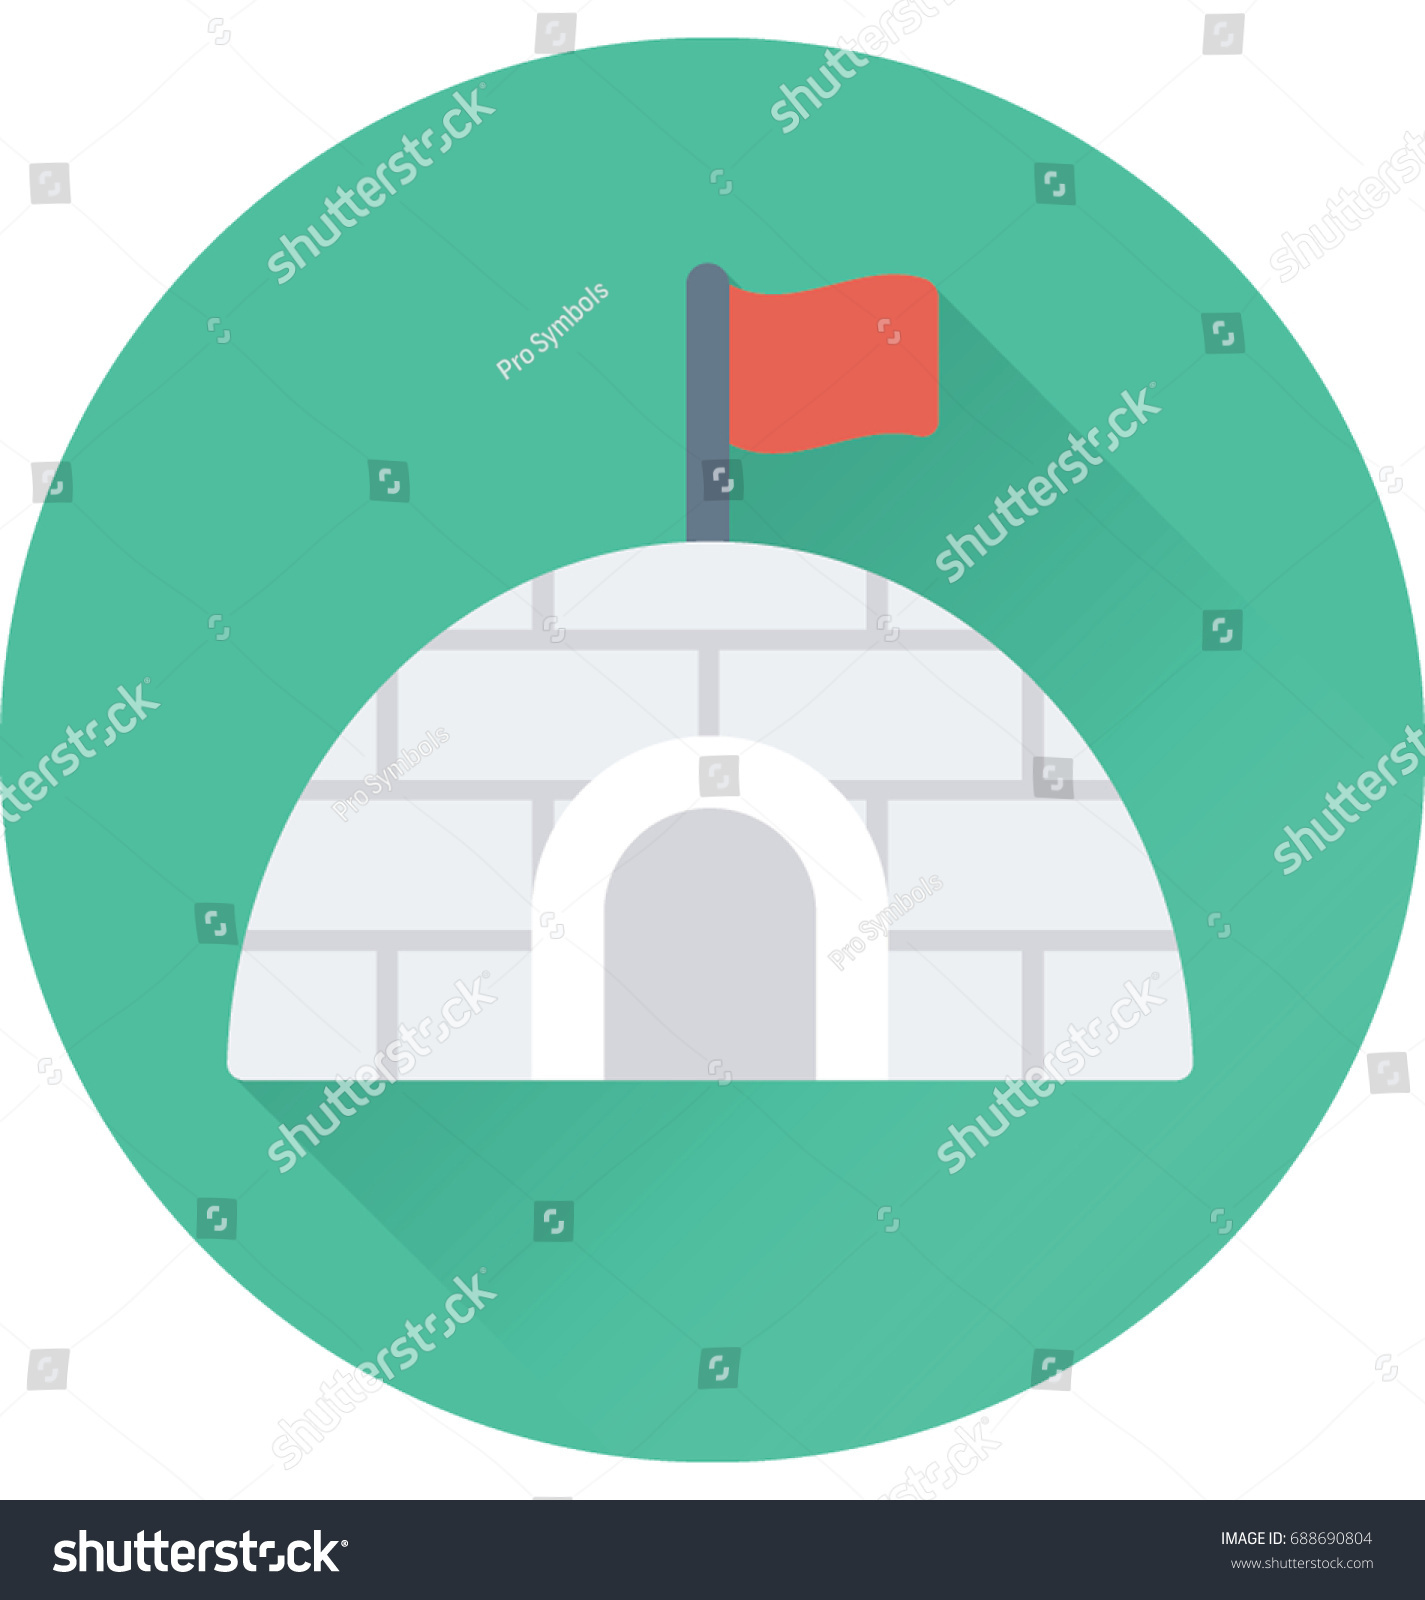 Igloo vector icon stock vector 688690804 shutterstock igloo vector icon pooptronica